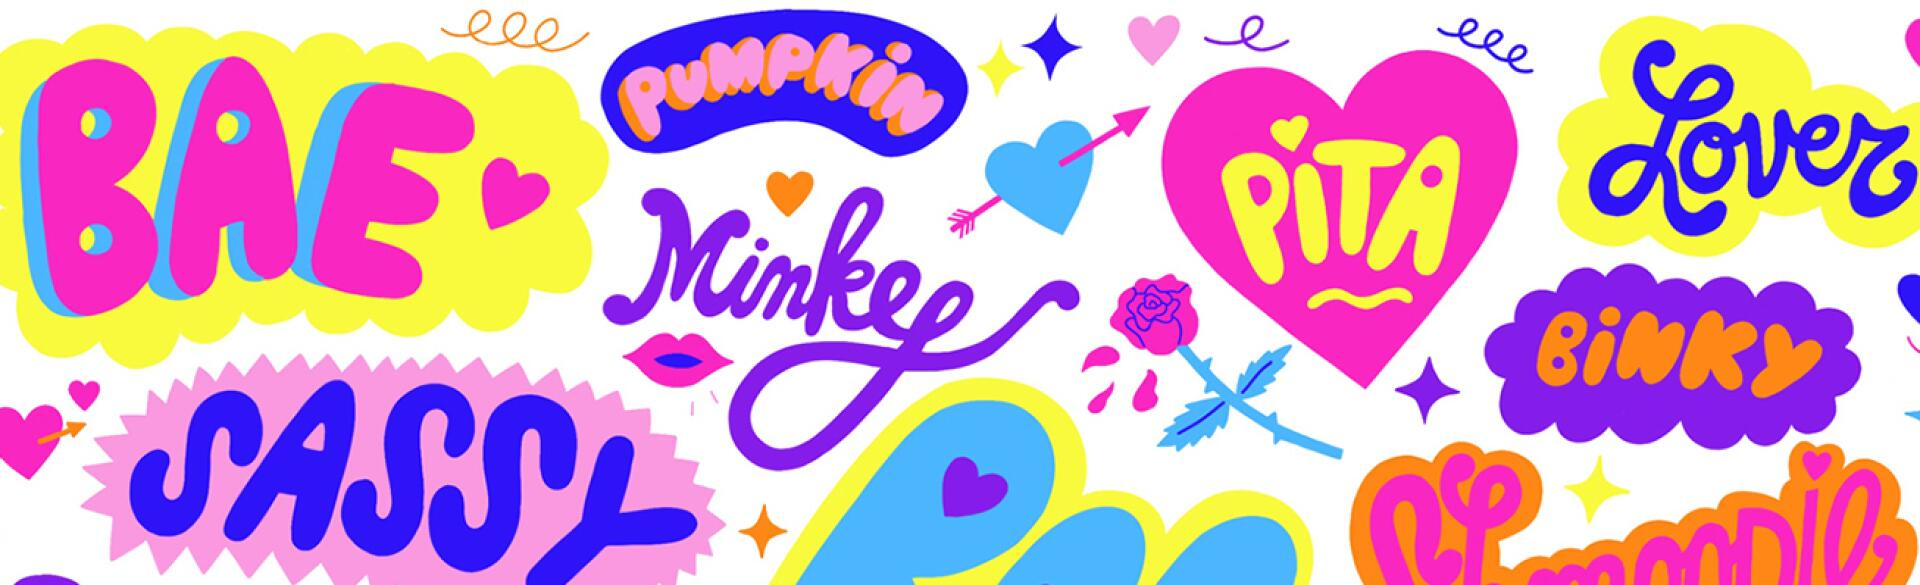 typography_illustration_of_nicknames_to_give_to_your_bae_by_emily_eldridge_1440x584.jpg